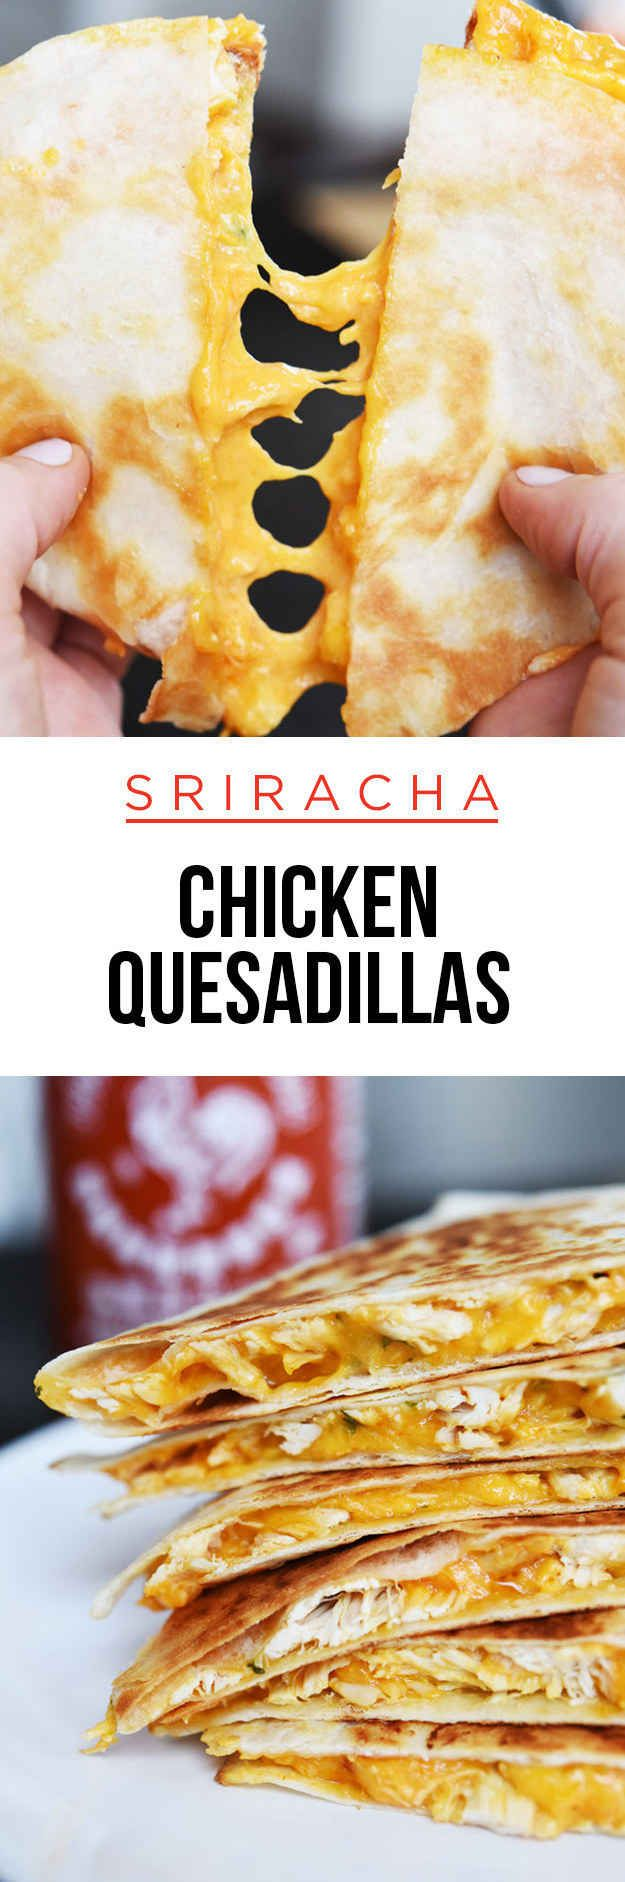 96 Best Snacks Camilan Images On Pinterest Simple Recipes Kerupuk Kemplang Ikan By Ff Pgp Sriracha Chicken Quesadillas 5 Insanely Delicious And Cheese